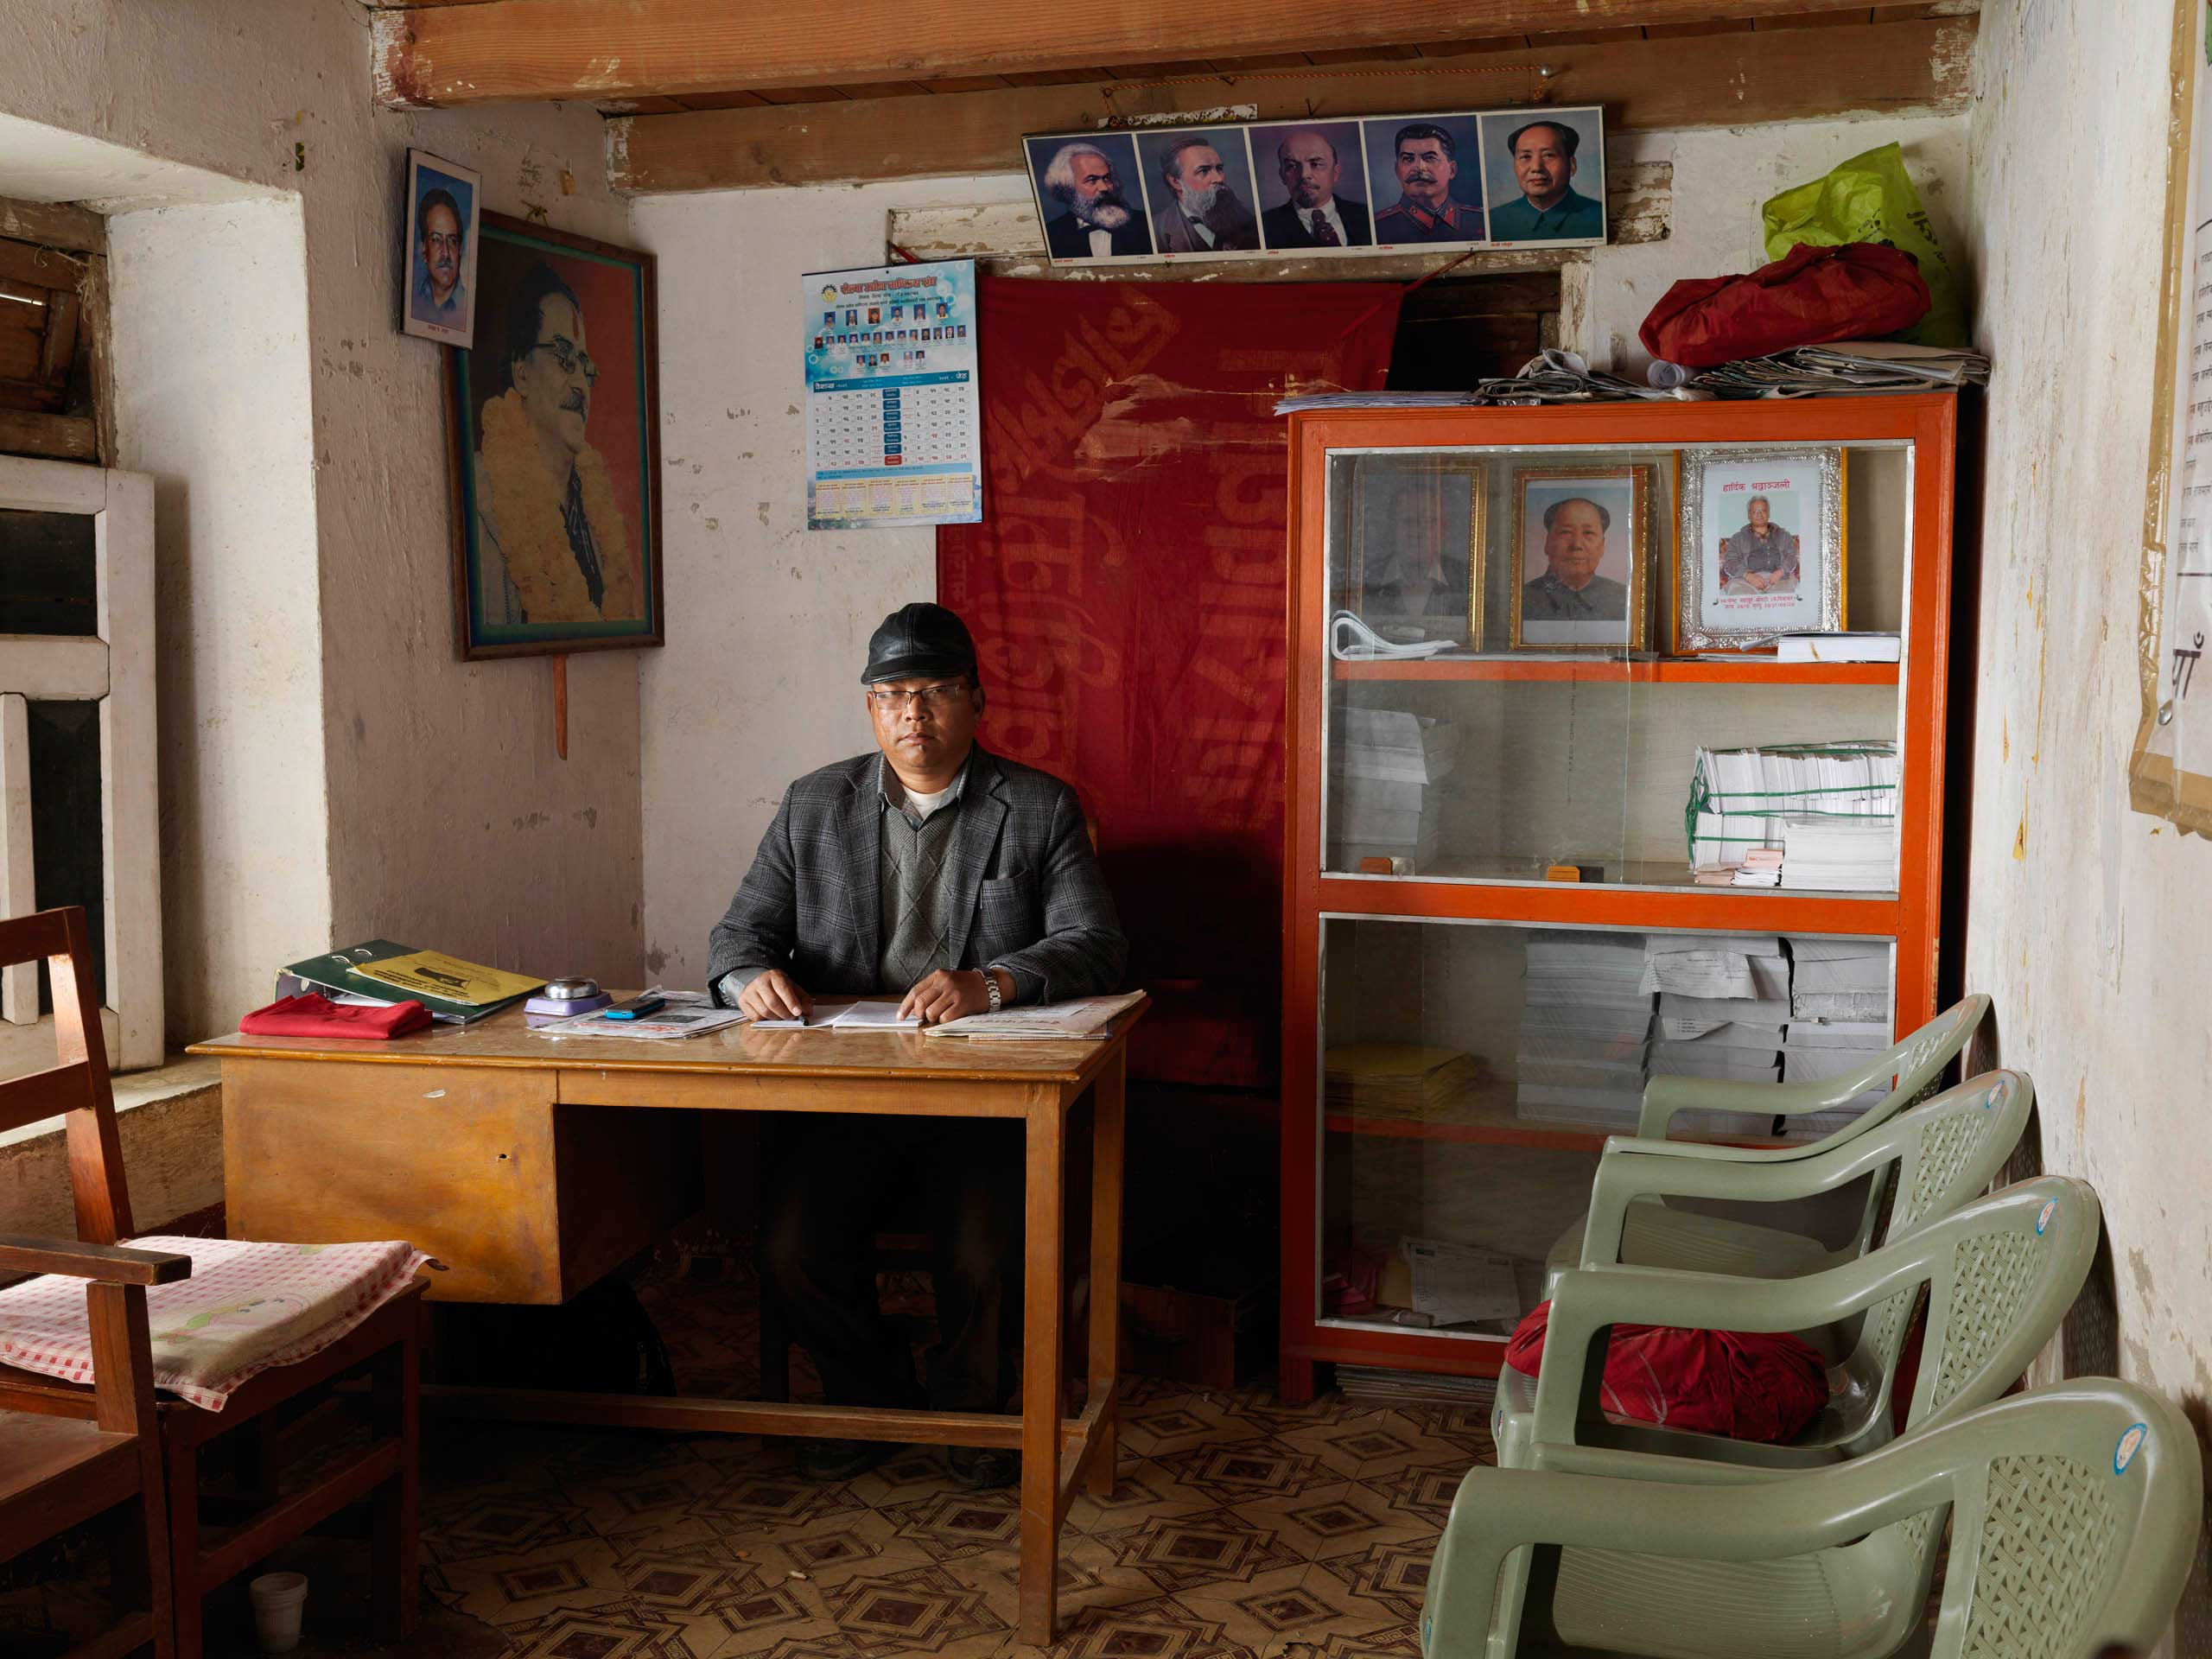 Chairman Surendra Thapa Gharti, aka  Dhruba,  in the UCPN-M (Maoists), district office in Libang, district Rolpa, in Nepal. Rolpa was the district where the Maoist uprising started in 1996. UCPN-M came in 3rd (after Nepali Congress and UML) in 2013 elections, with 80 of 575 elected seats.